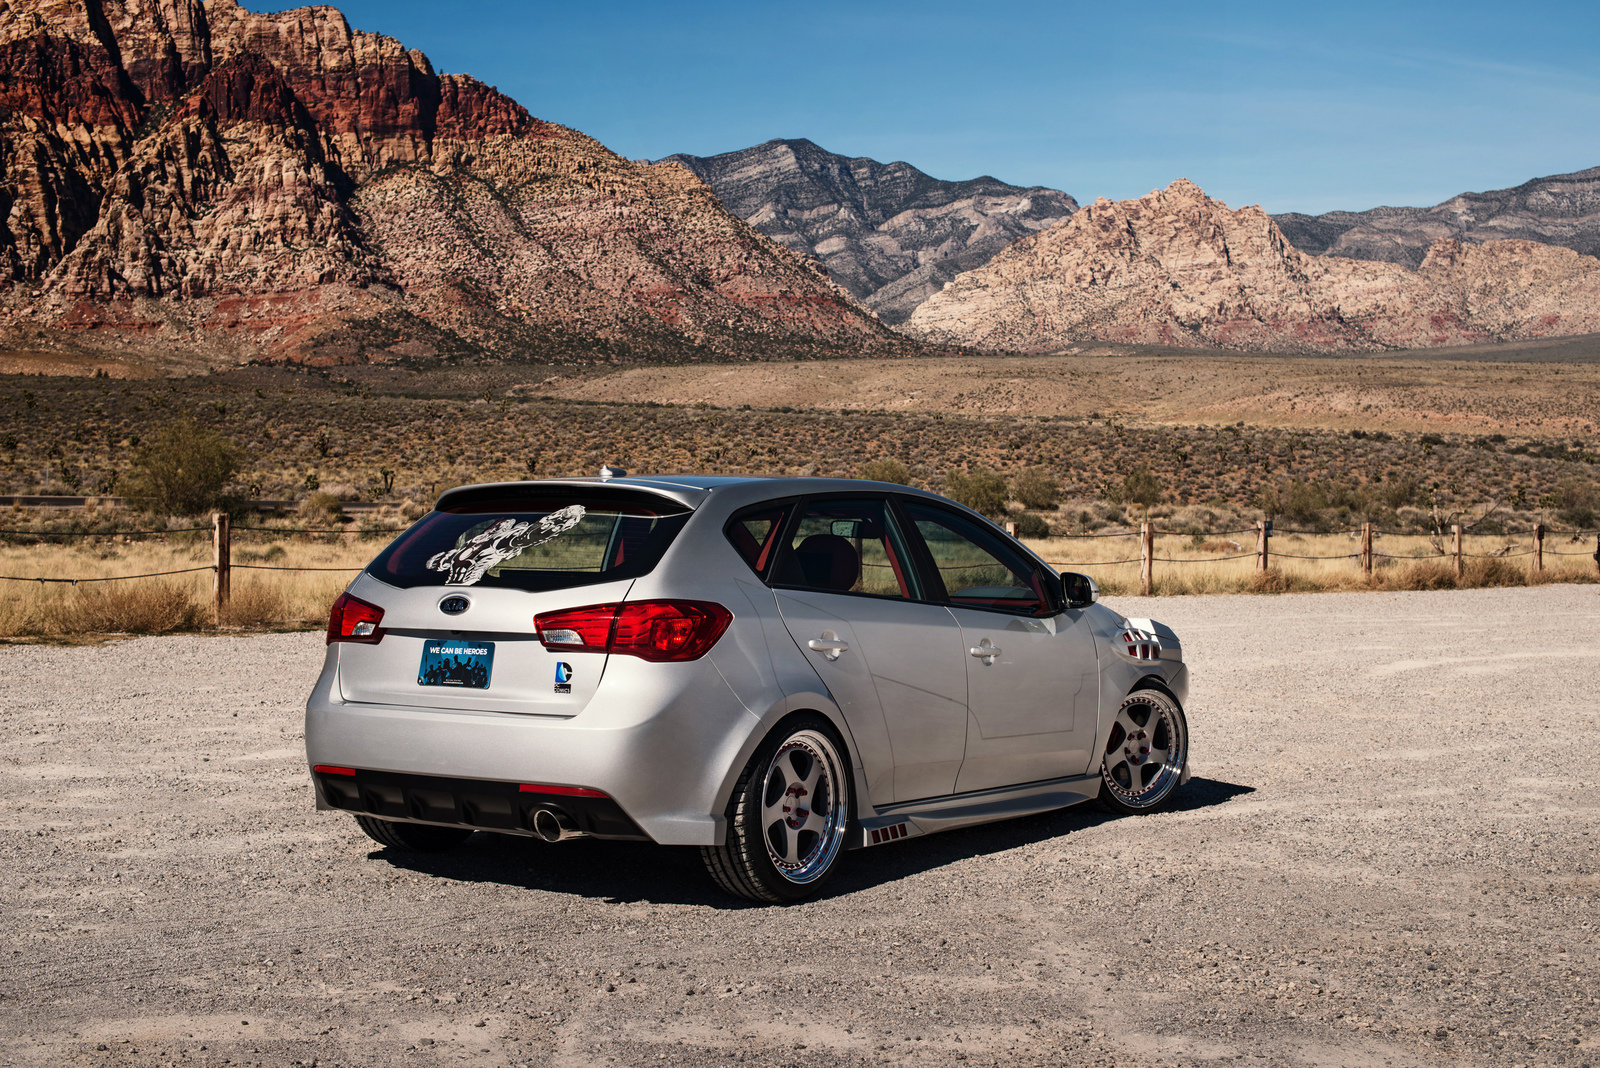 2013 kia forte 5 door cyborg edition picture 480204 car review top speed. Black Bedroom Furniture Sets. Home Design Ideas